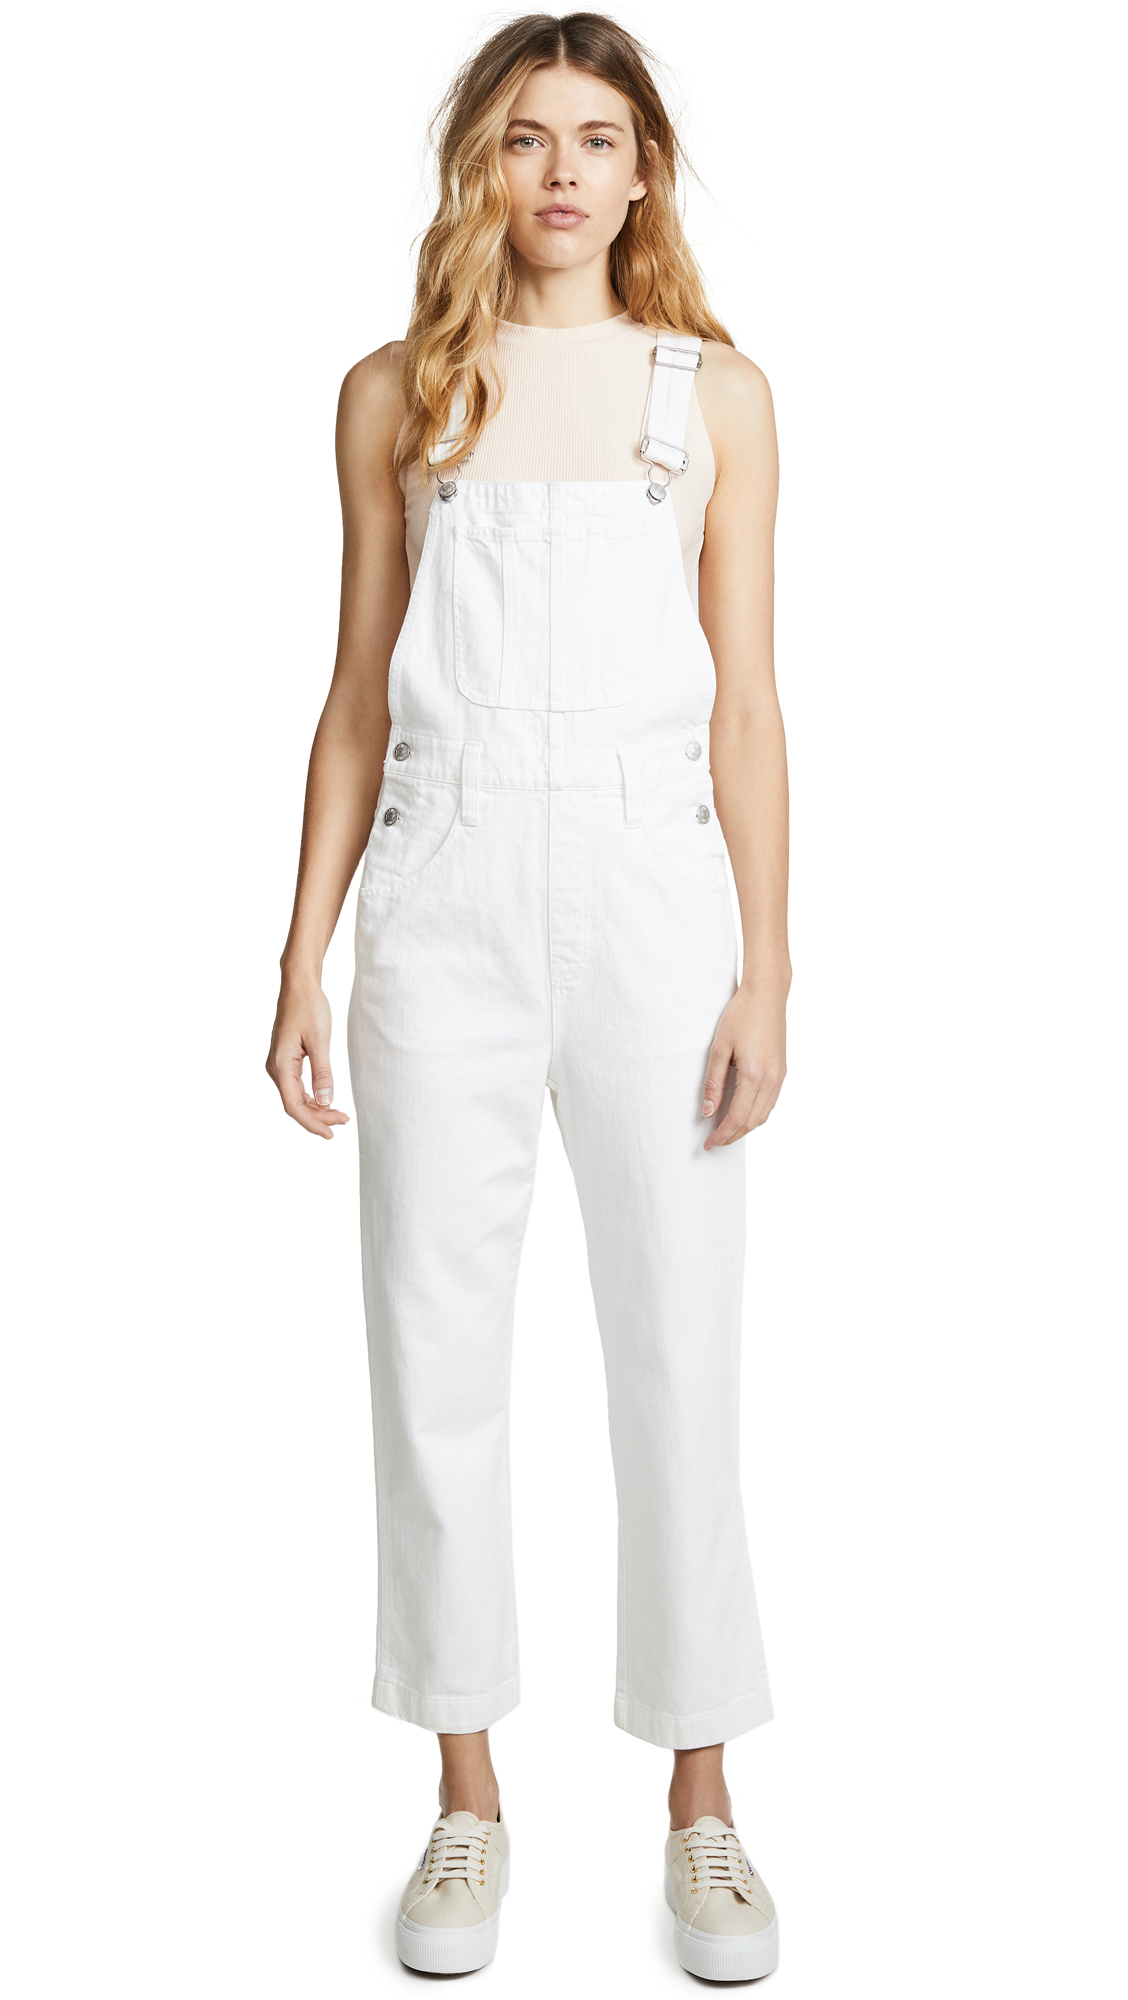 Madewell Straight Leg Overalls In White